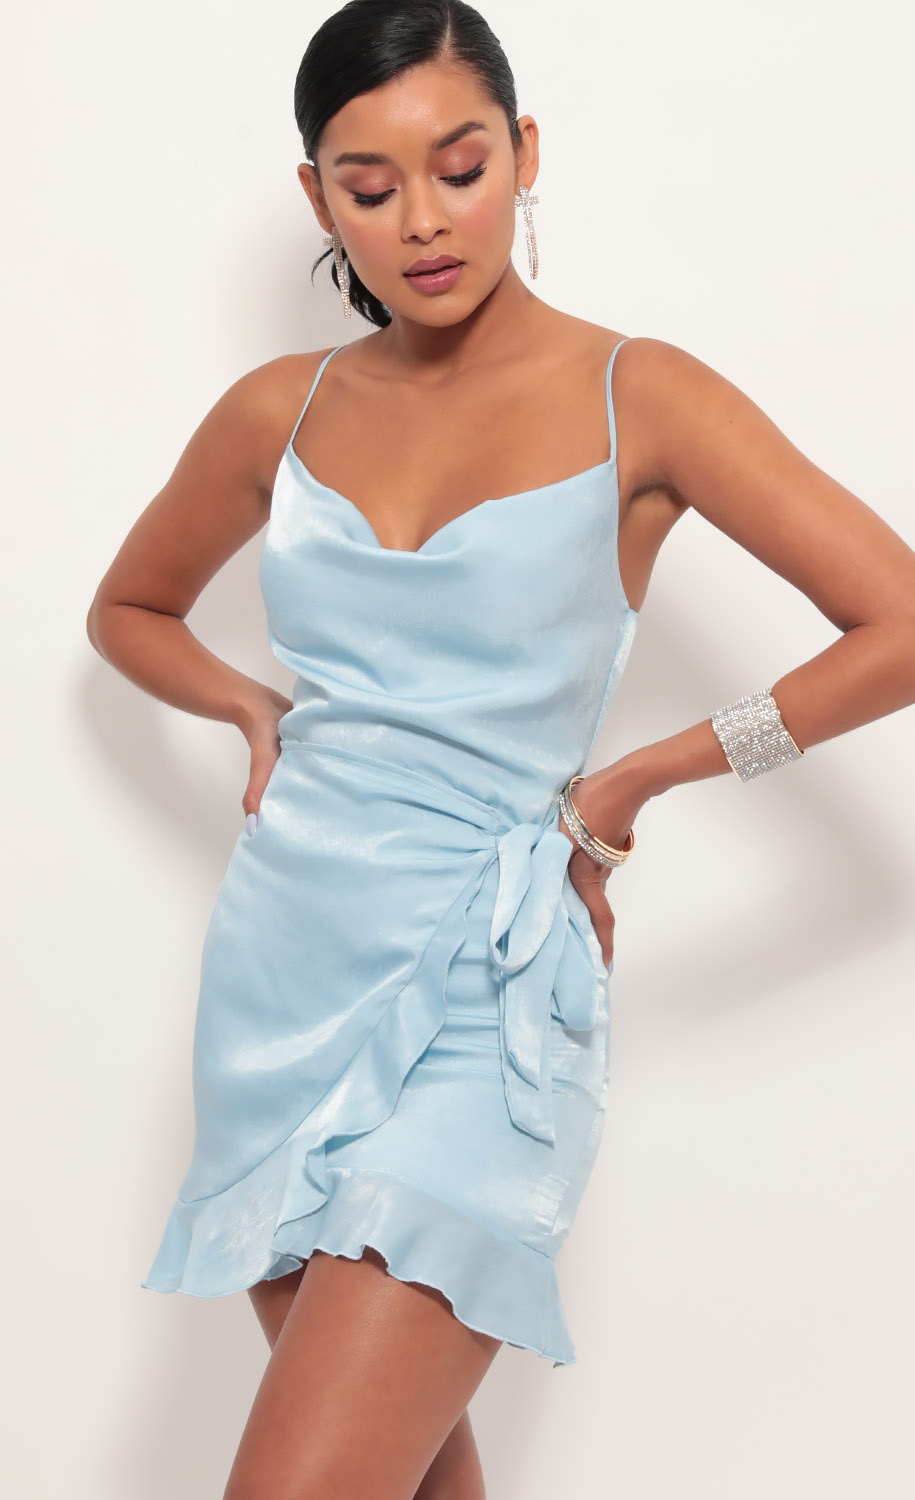 Positano Satin Tie Dress in Light Blue